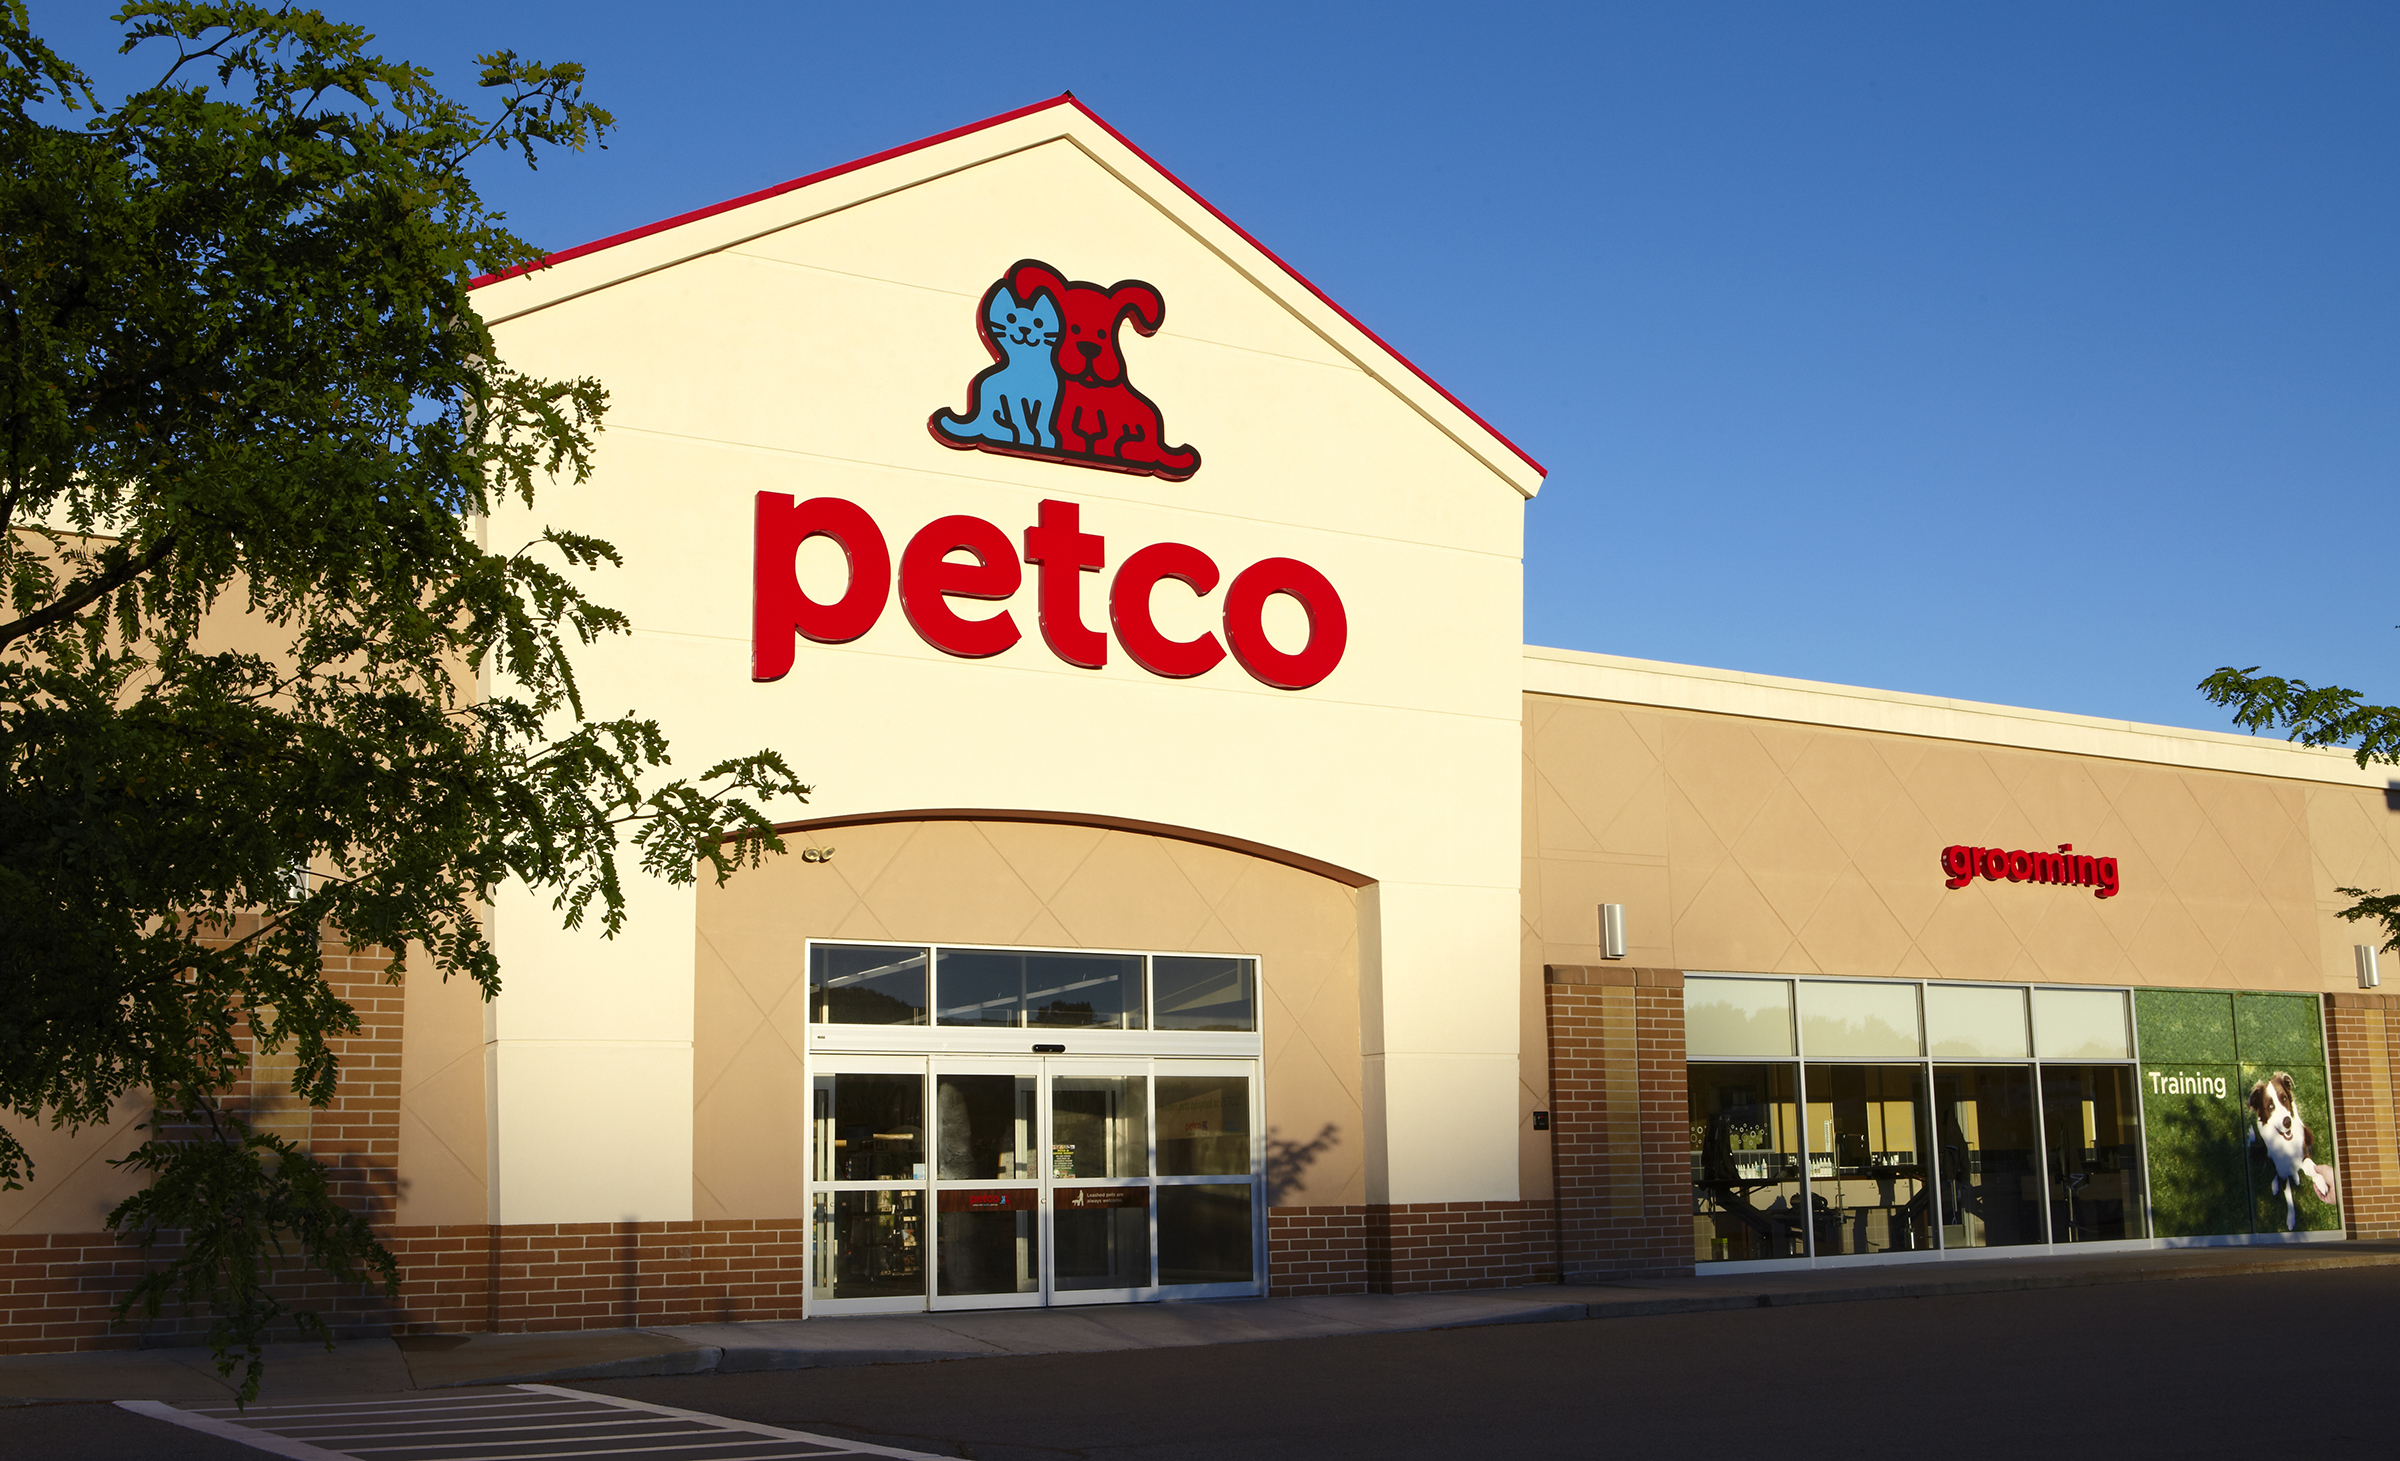 Petco sets grand opening date at Homestead Village